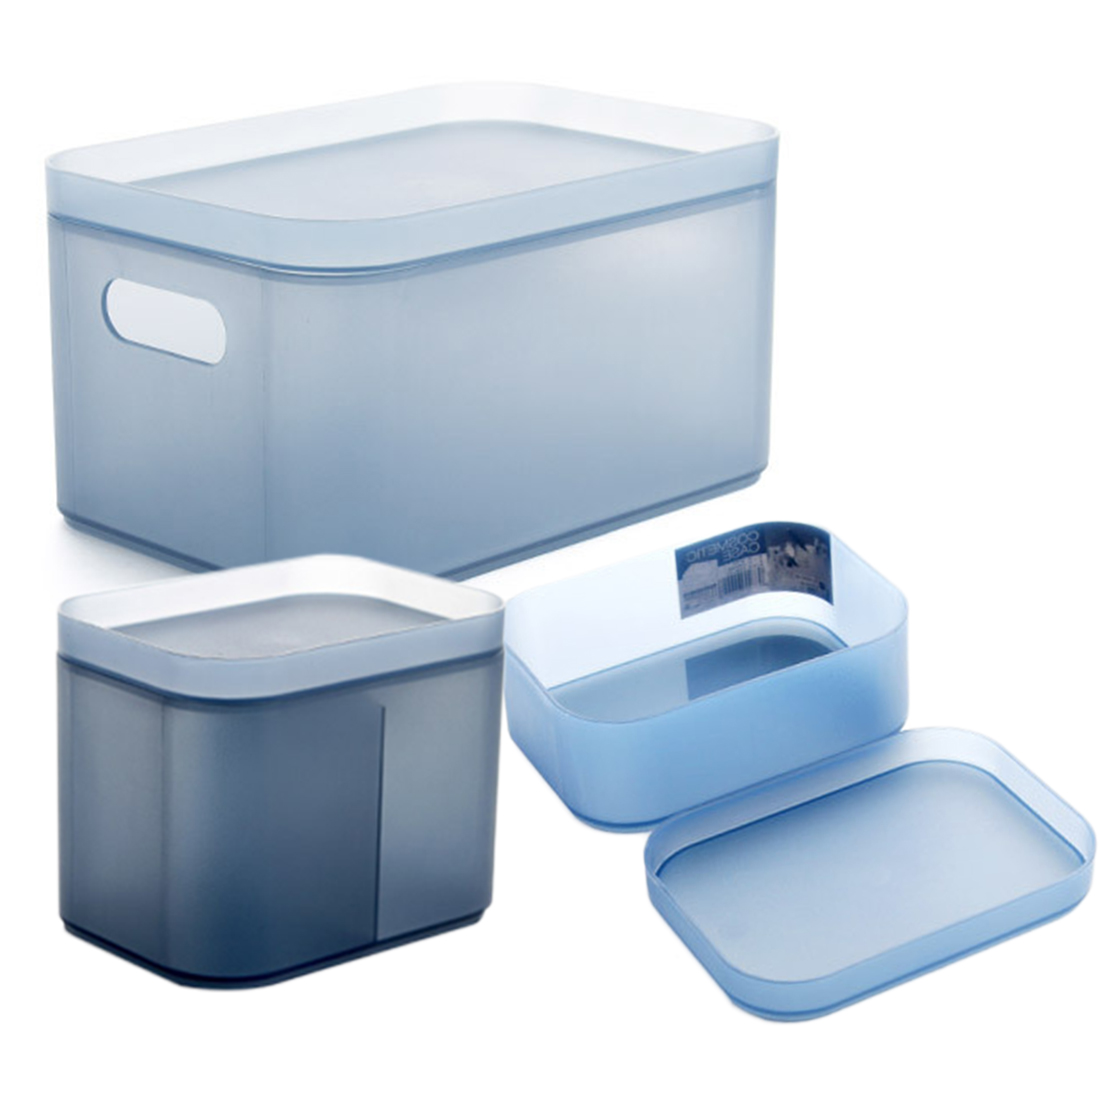 HIPSTEEN 3Pcs/lot Clothing Storage Bins Thickened Plastic Storage Boxes  Home Sundries Organizer Clothes Container Set